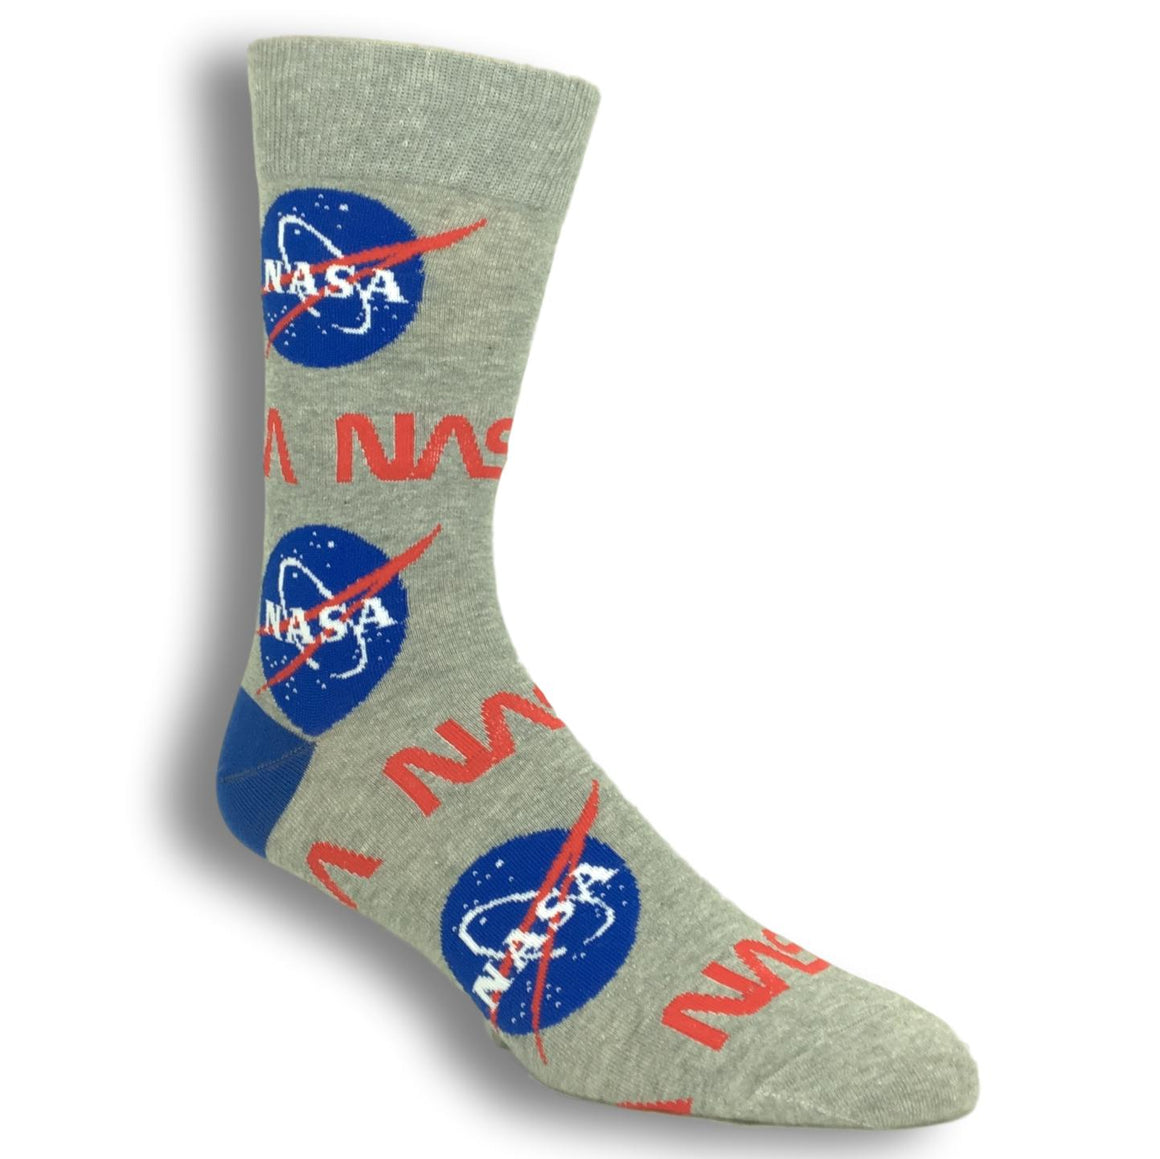 NASA Logo Socks by Good Luck Sock - The Sock Spot